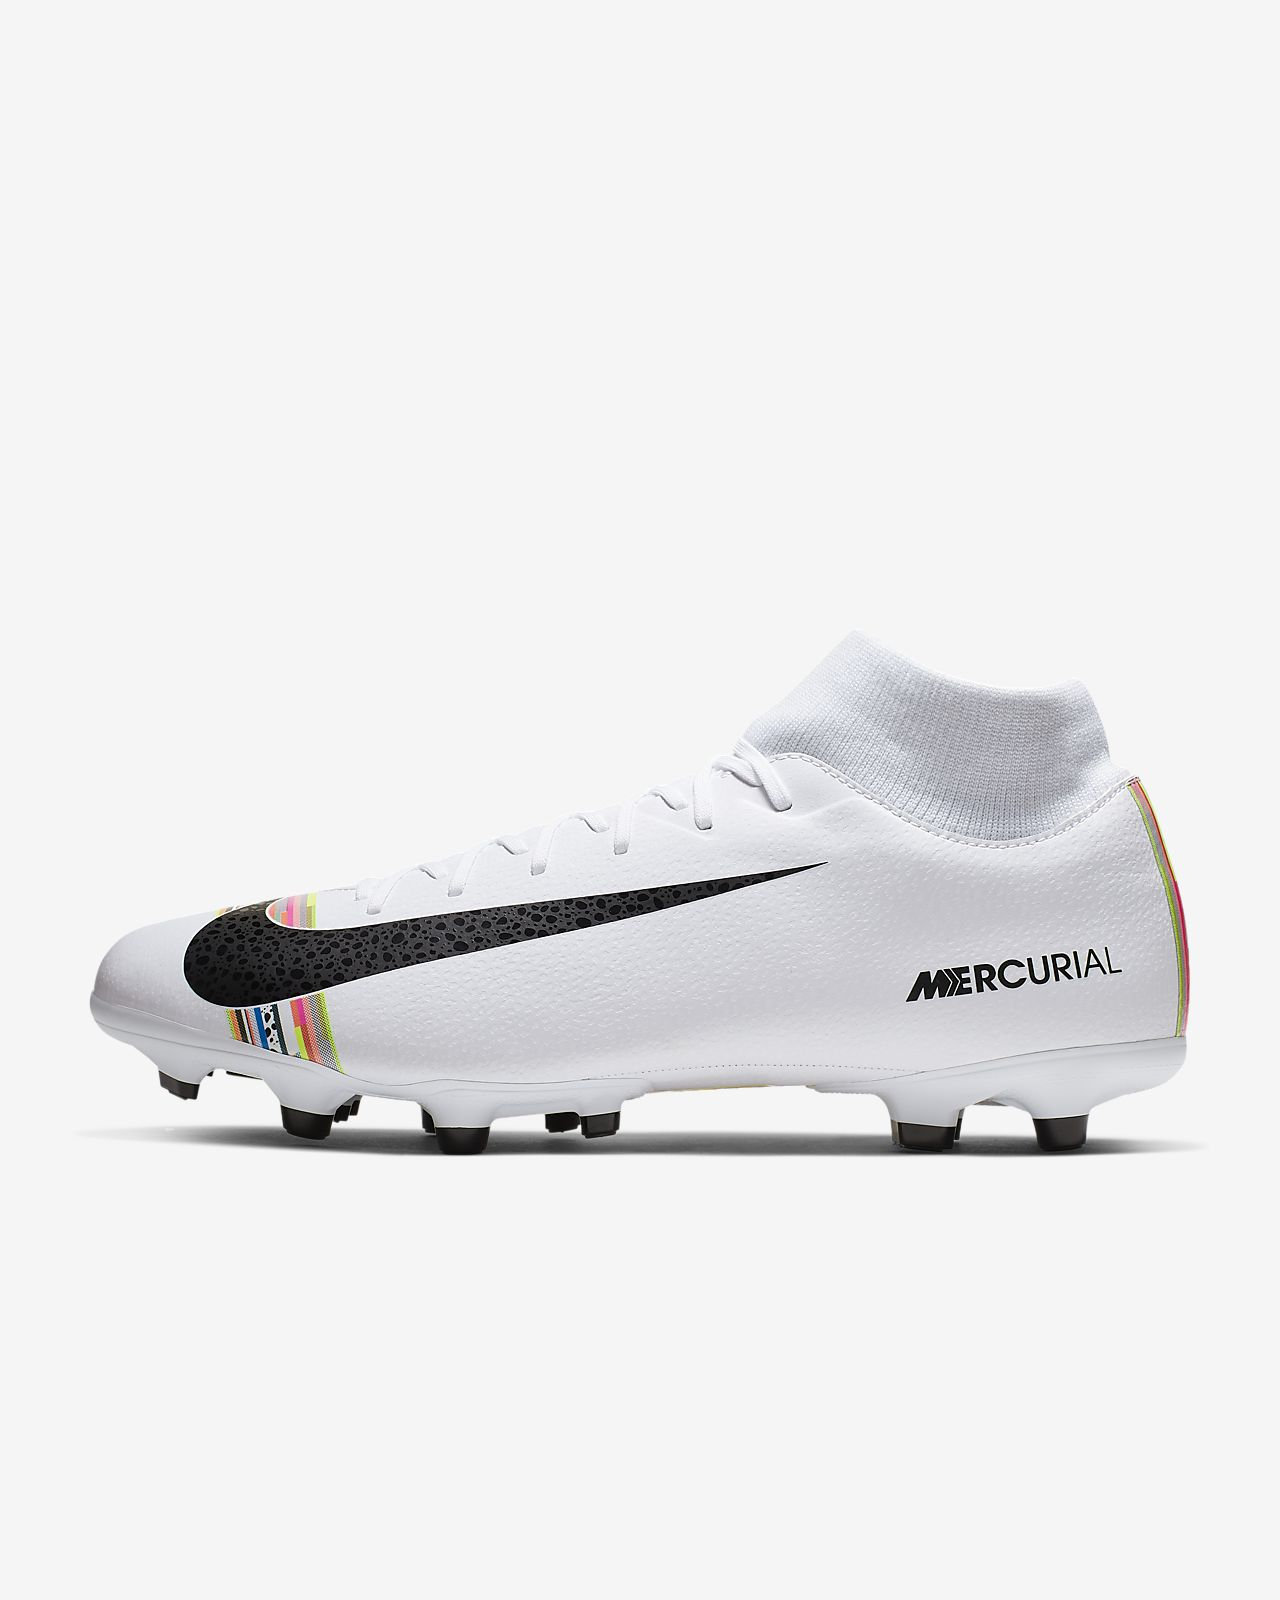 Calzado de fútbol para múltiples superficies Nike Mercurial Superfly 6 Academy LVL UP MG